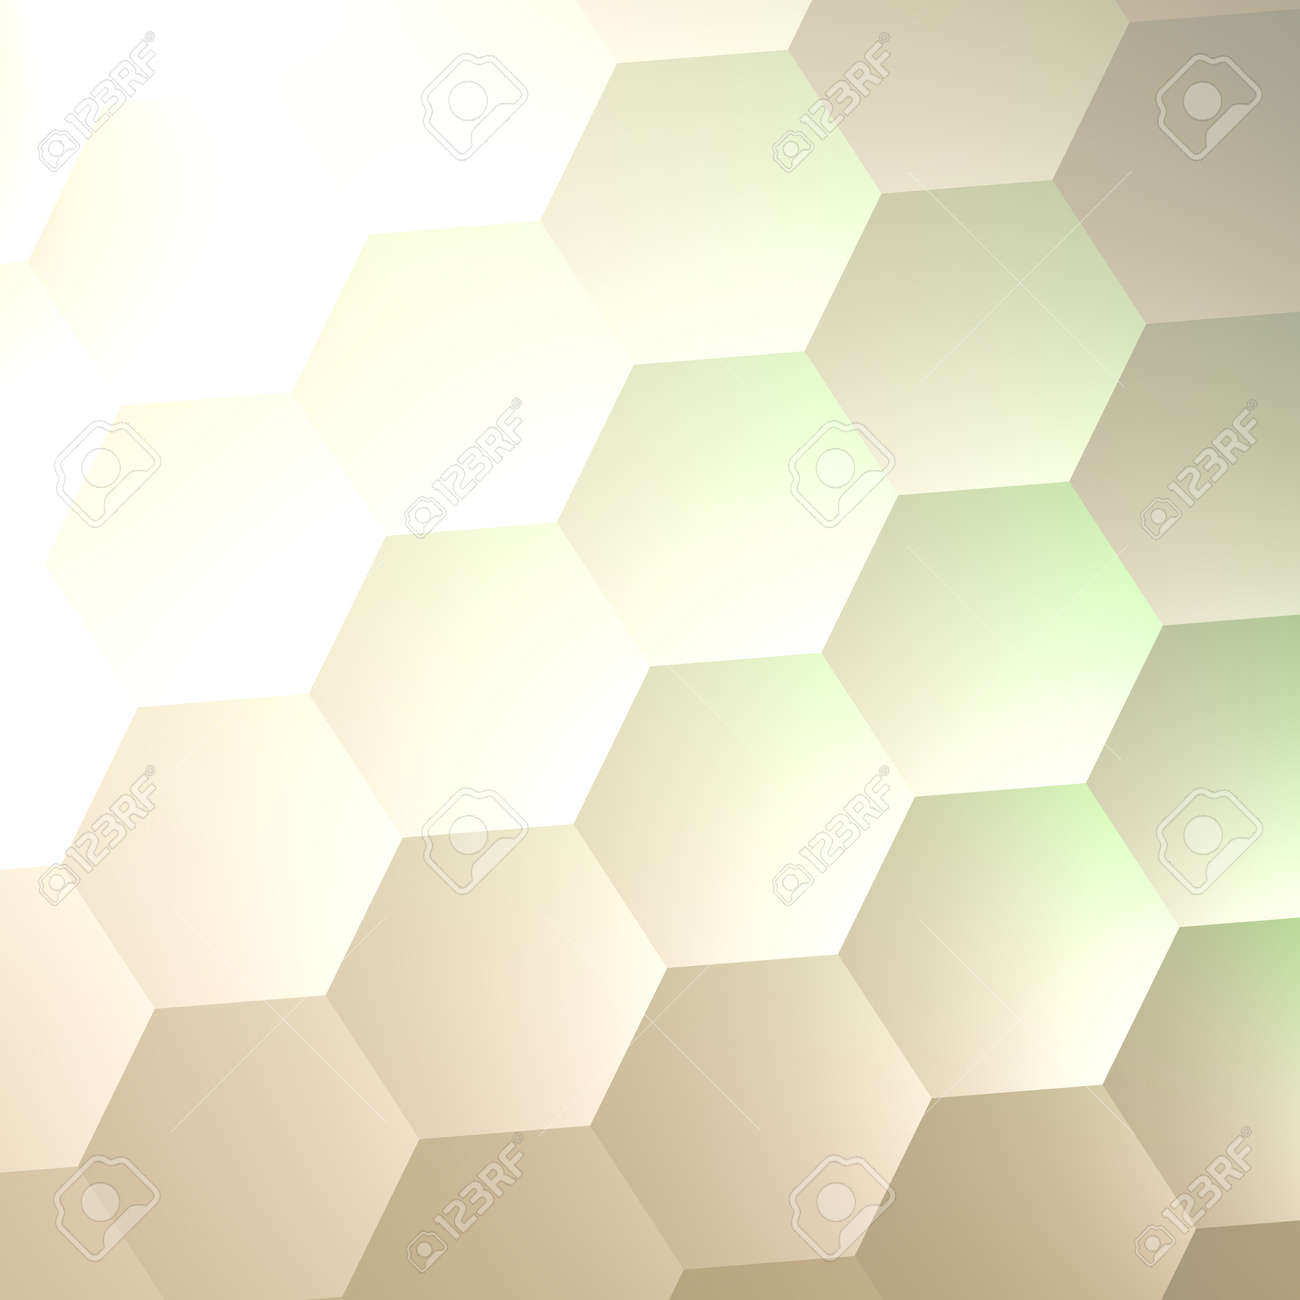 stock photo white hexagon wall background simple blank copy space lots of hexagons abstract quilted soft hex shapes poster banner or flyer - Simple Shapes Wall Design